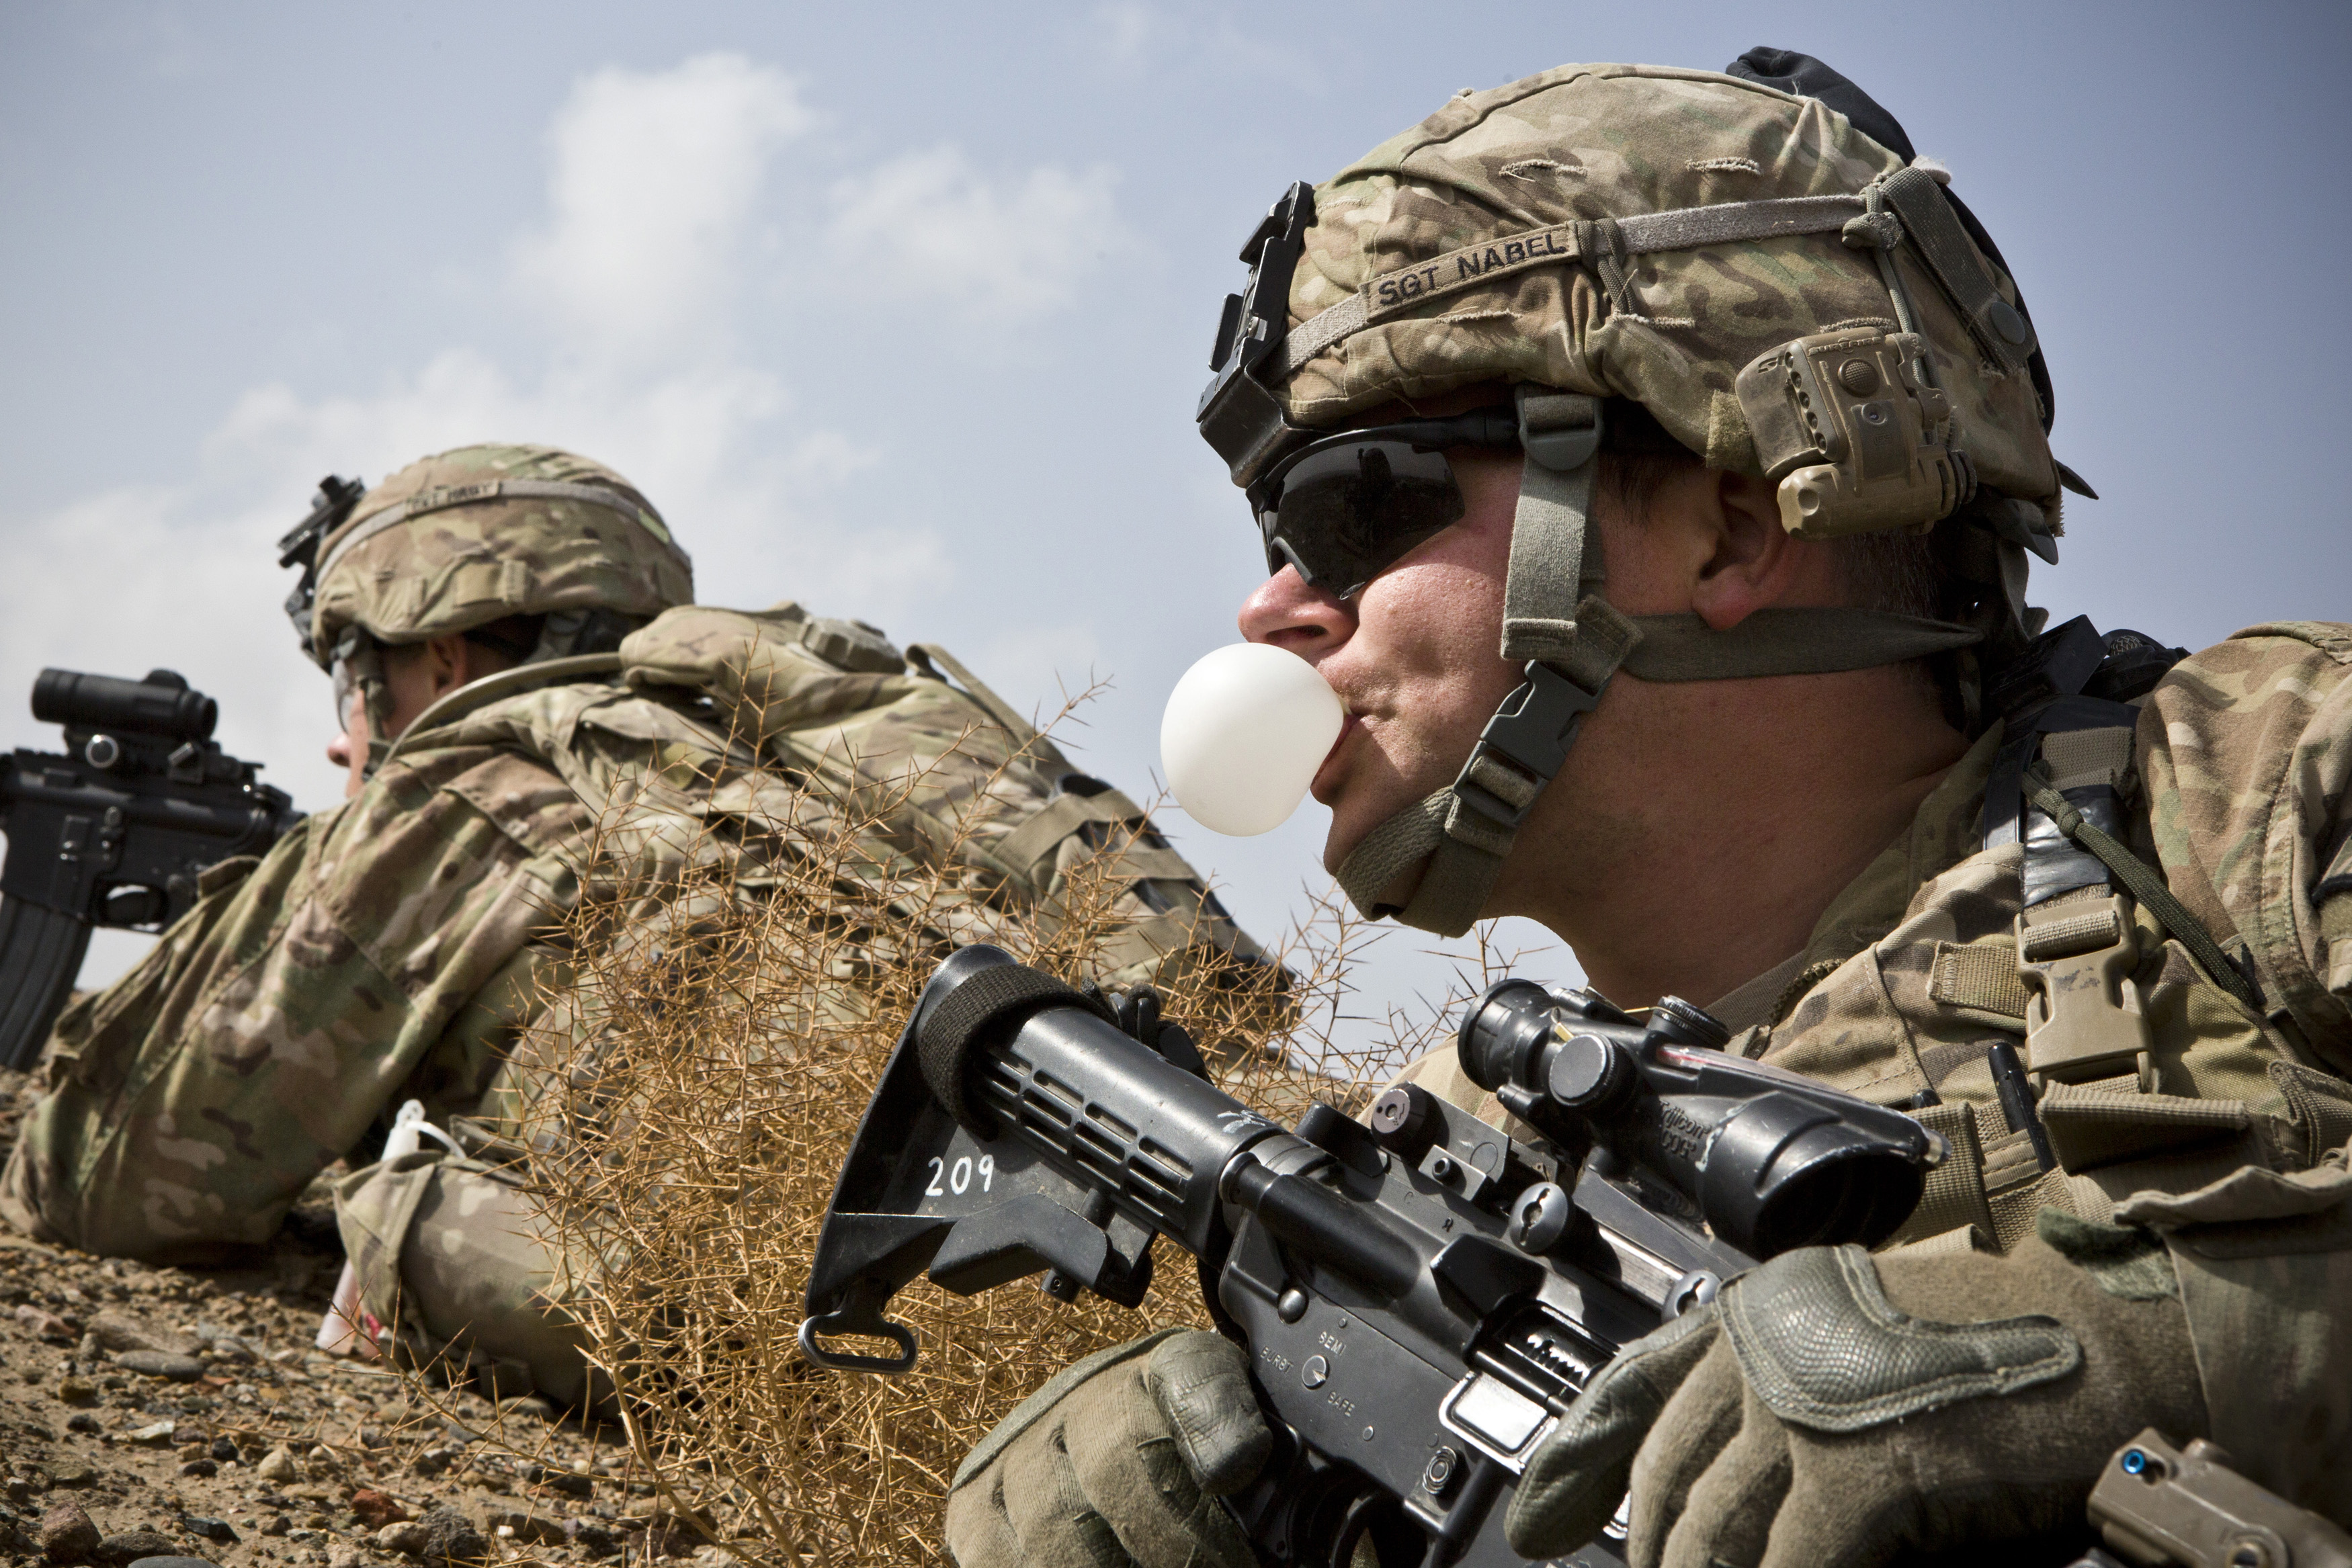 A U.S. Army soldier with Charlie Company, 36th Infantry Regiment, 1st Armored Division blows a bubble with his chewing gum during a mission near Command Outpost Pa'in Kalay in Maiwand District, Kandahar Province February 3, 2013. REUTERS/Stringer